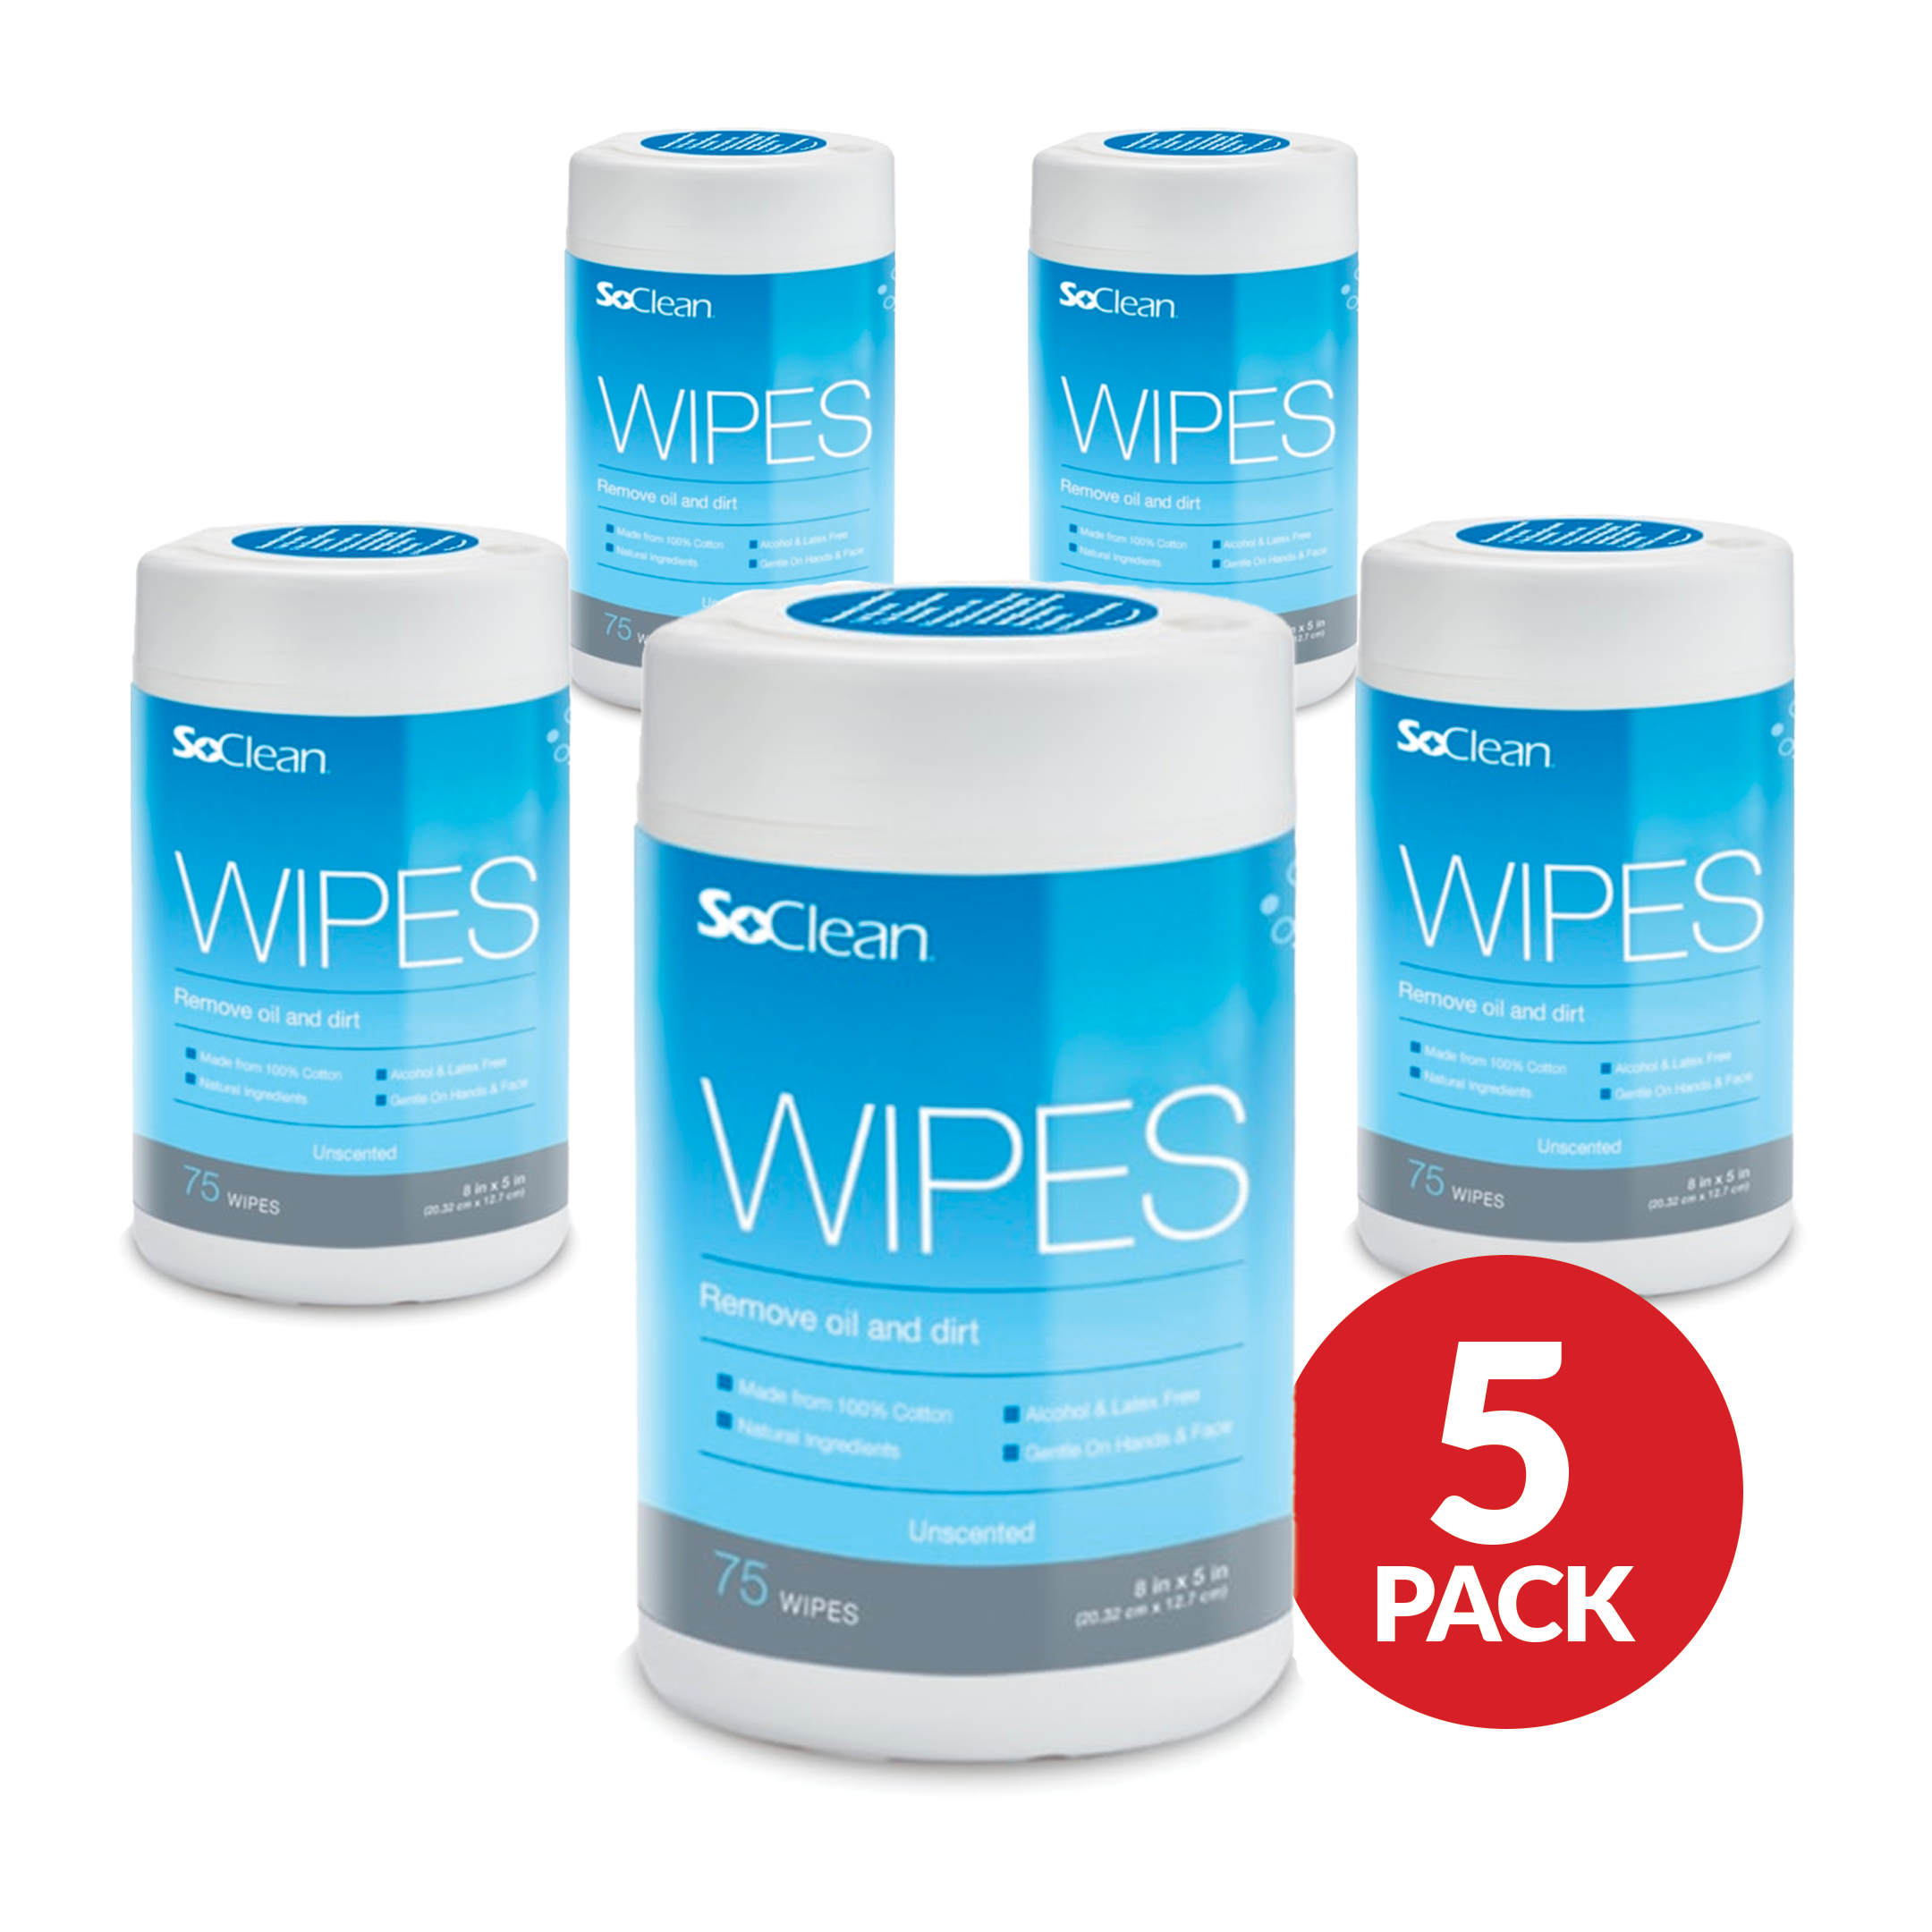 SoClean Wipes Bundle